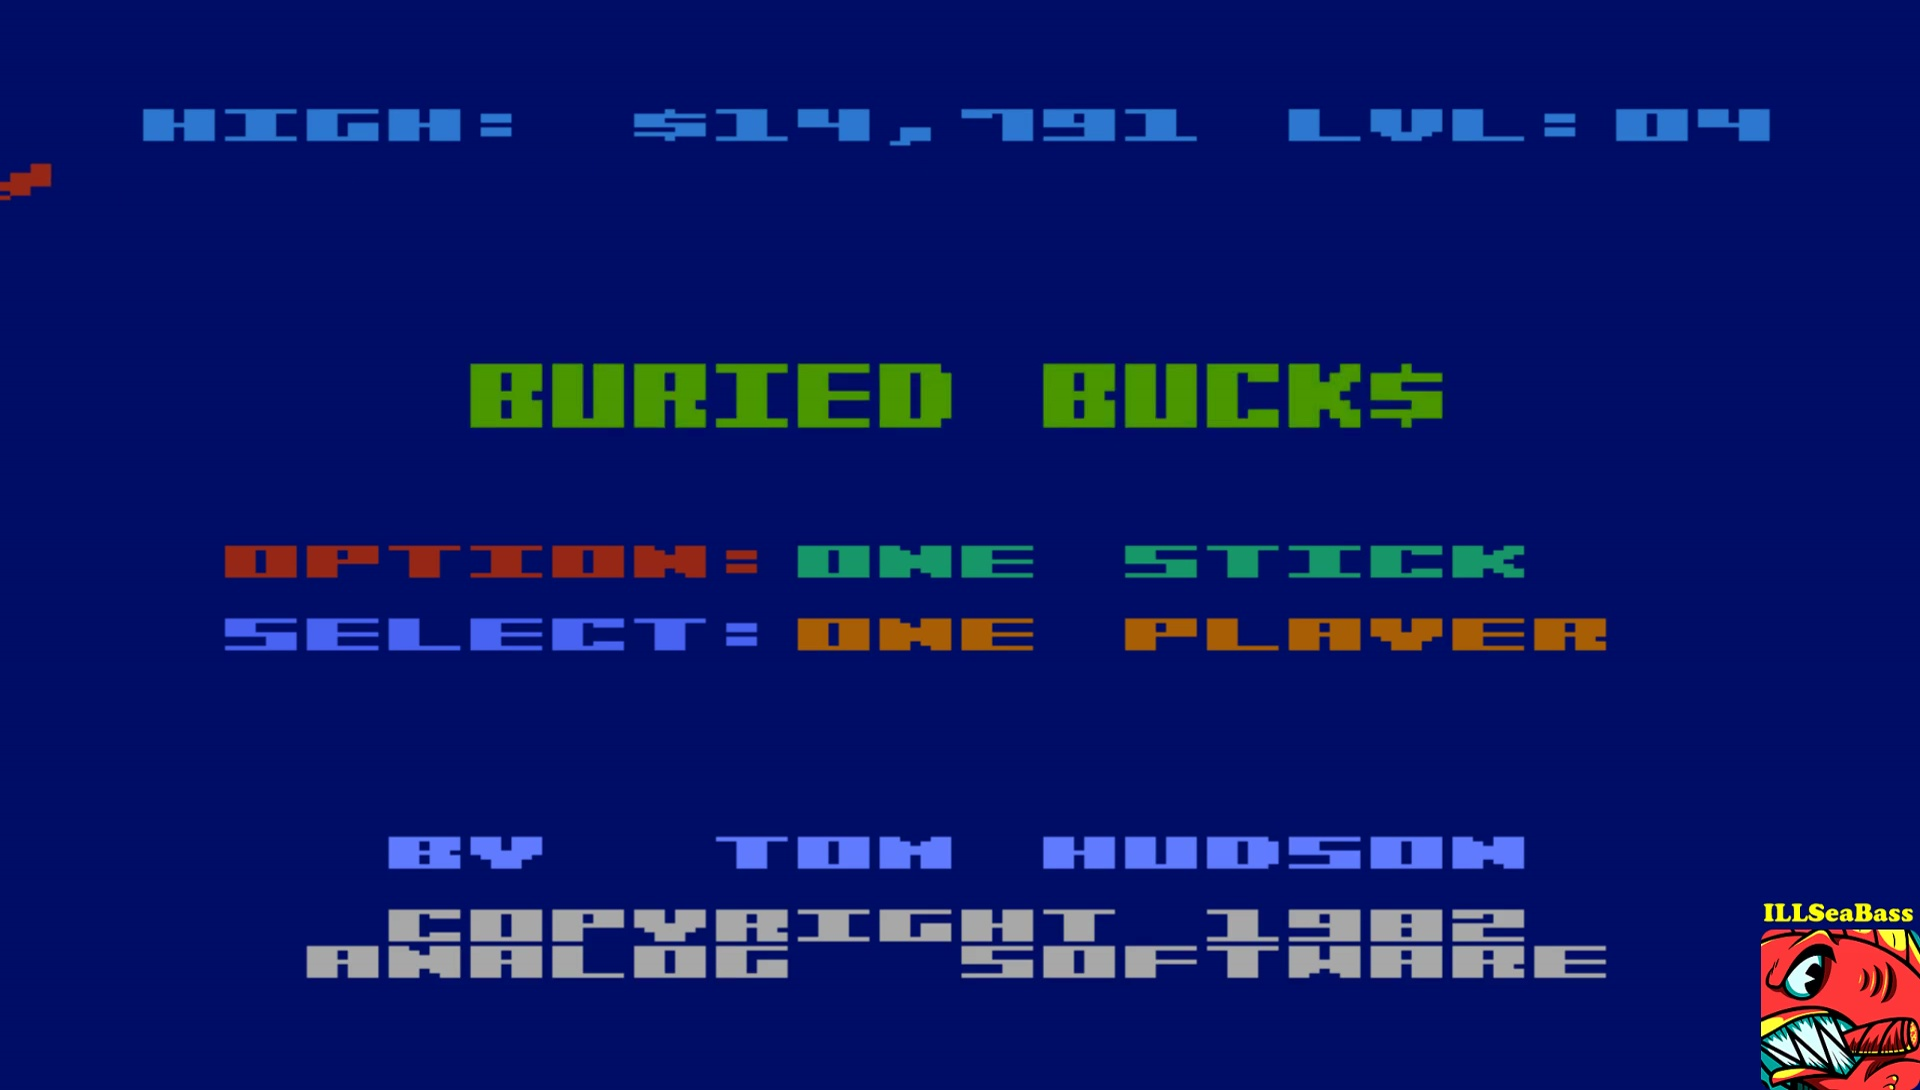 ILLSeaBass: Buried Buck$ (Atari 400/800/XL/XE Emulated) 14,791 points on 2017-05-24 08:52:22